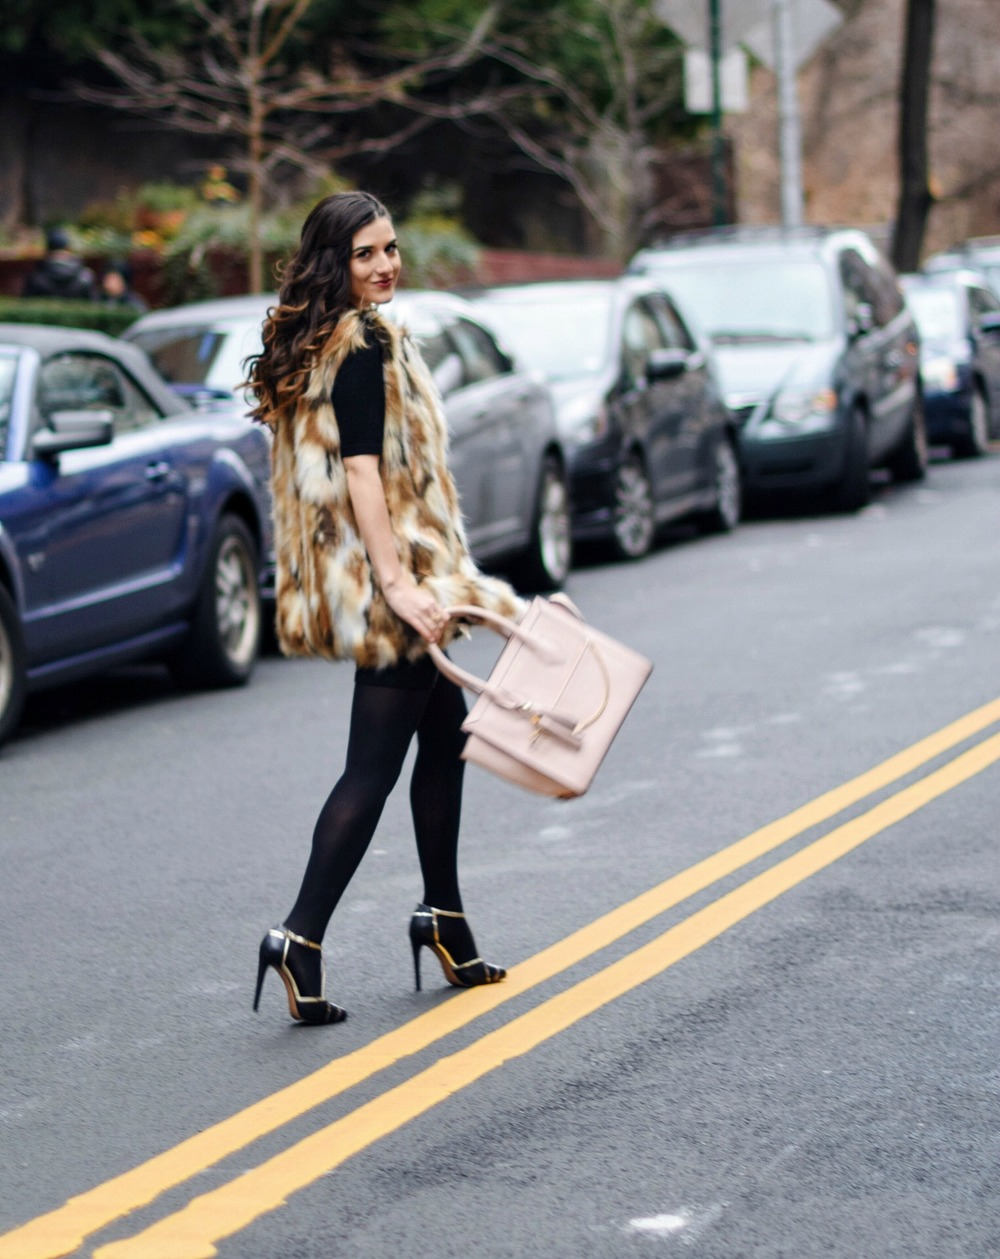 Calico Fur Henri Bendel Structured Leather Bag Louboutins & Love Fashion Blog Esther Santer NYC Street Style Blogger Zara Gold Jewelry Bracelet Pink Purse Vest Hair Inspo Outfit OOTD Cornrows Black Dress LBD Shoes Heels Women Girl Fall Winter Shopping.jpg